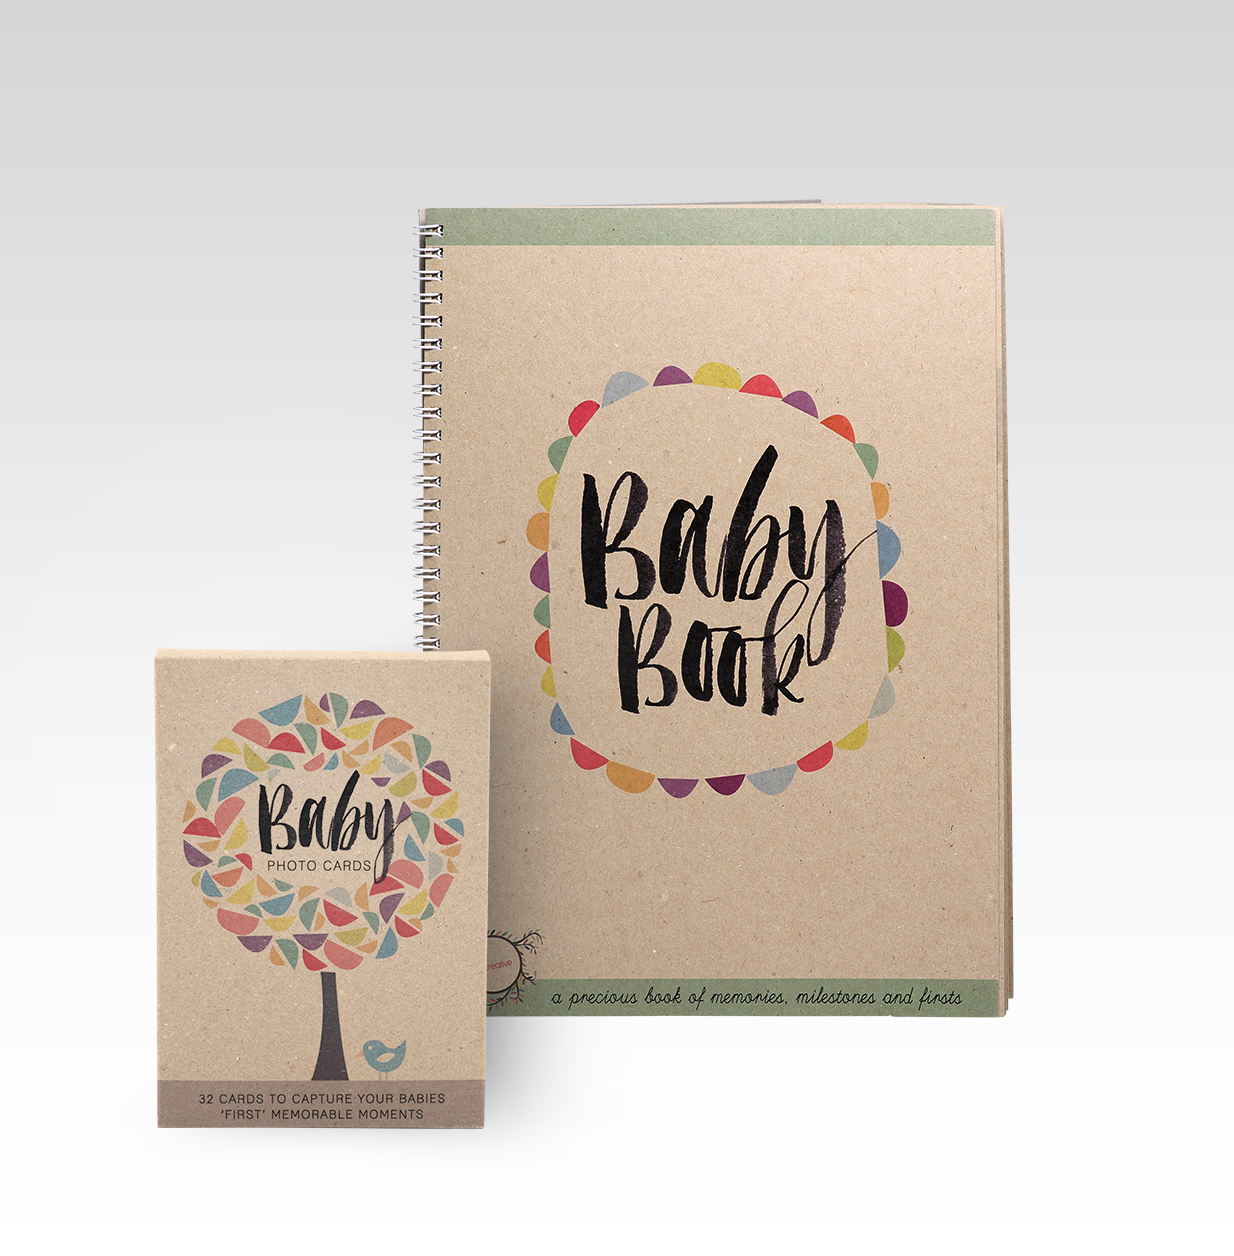 Baby Book Photo Cards Gift